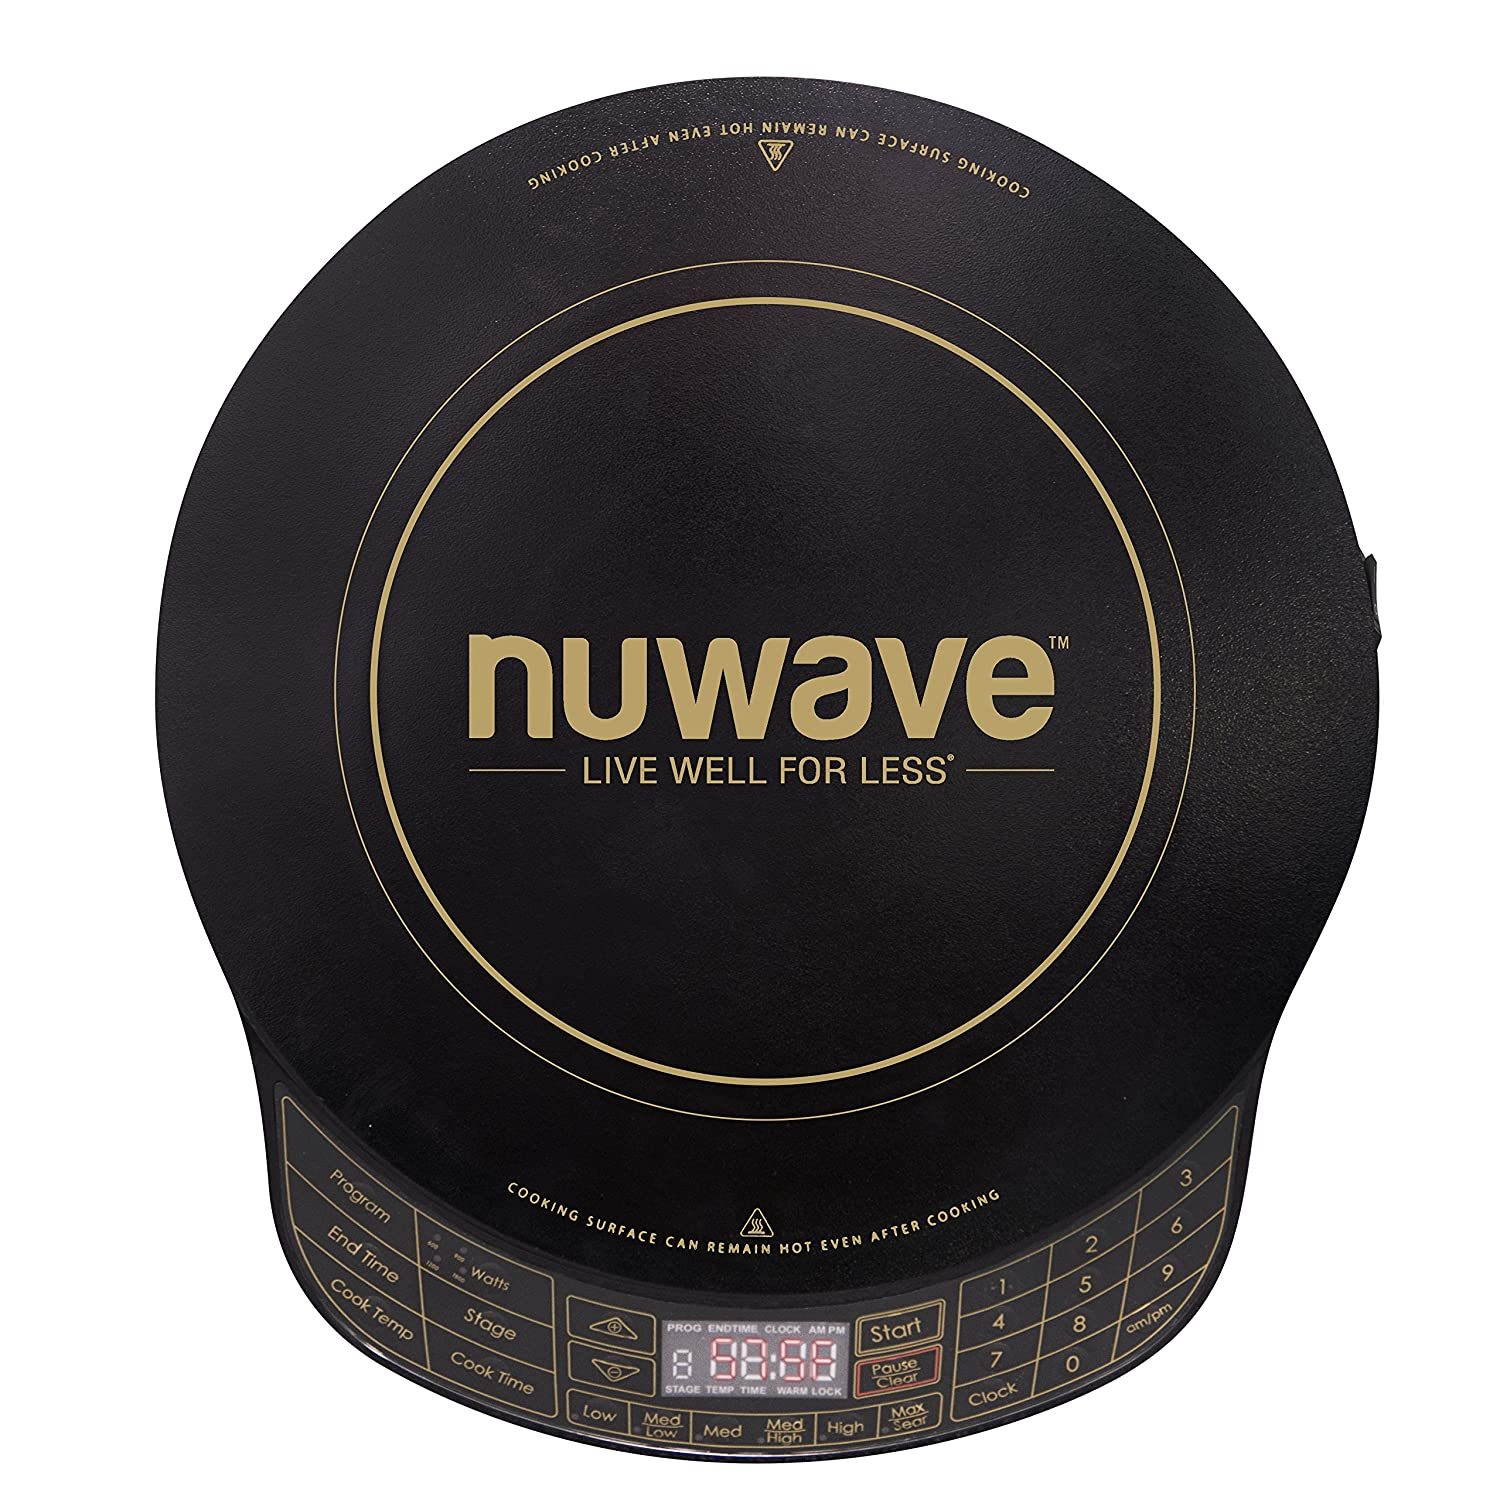 NuWave Platinum 30401 Precision Induction Cooktop, Black with Remote and Advanced Features for 2018